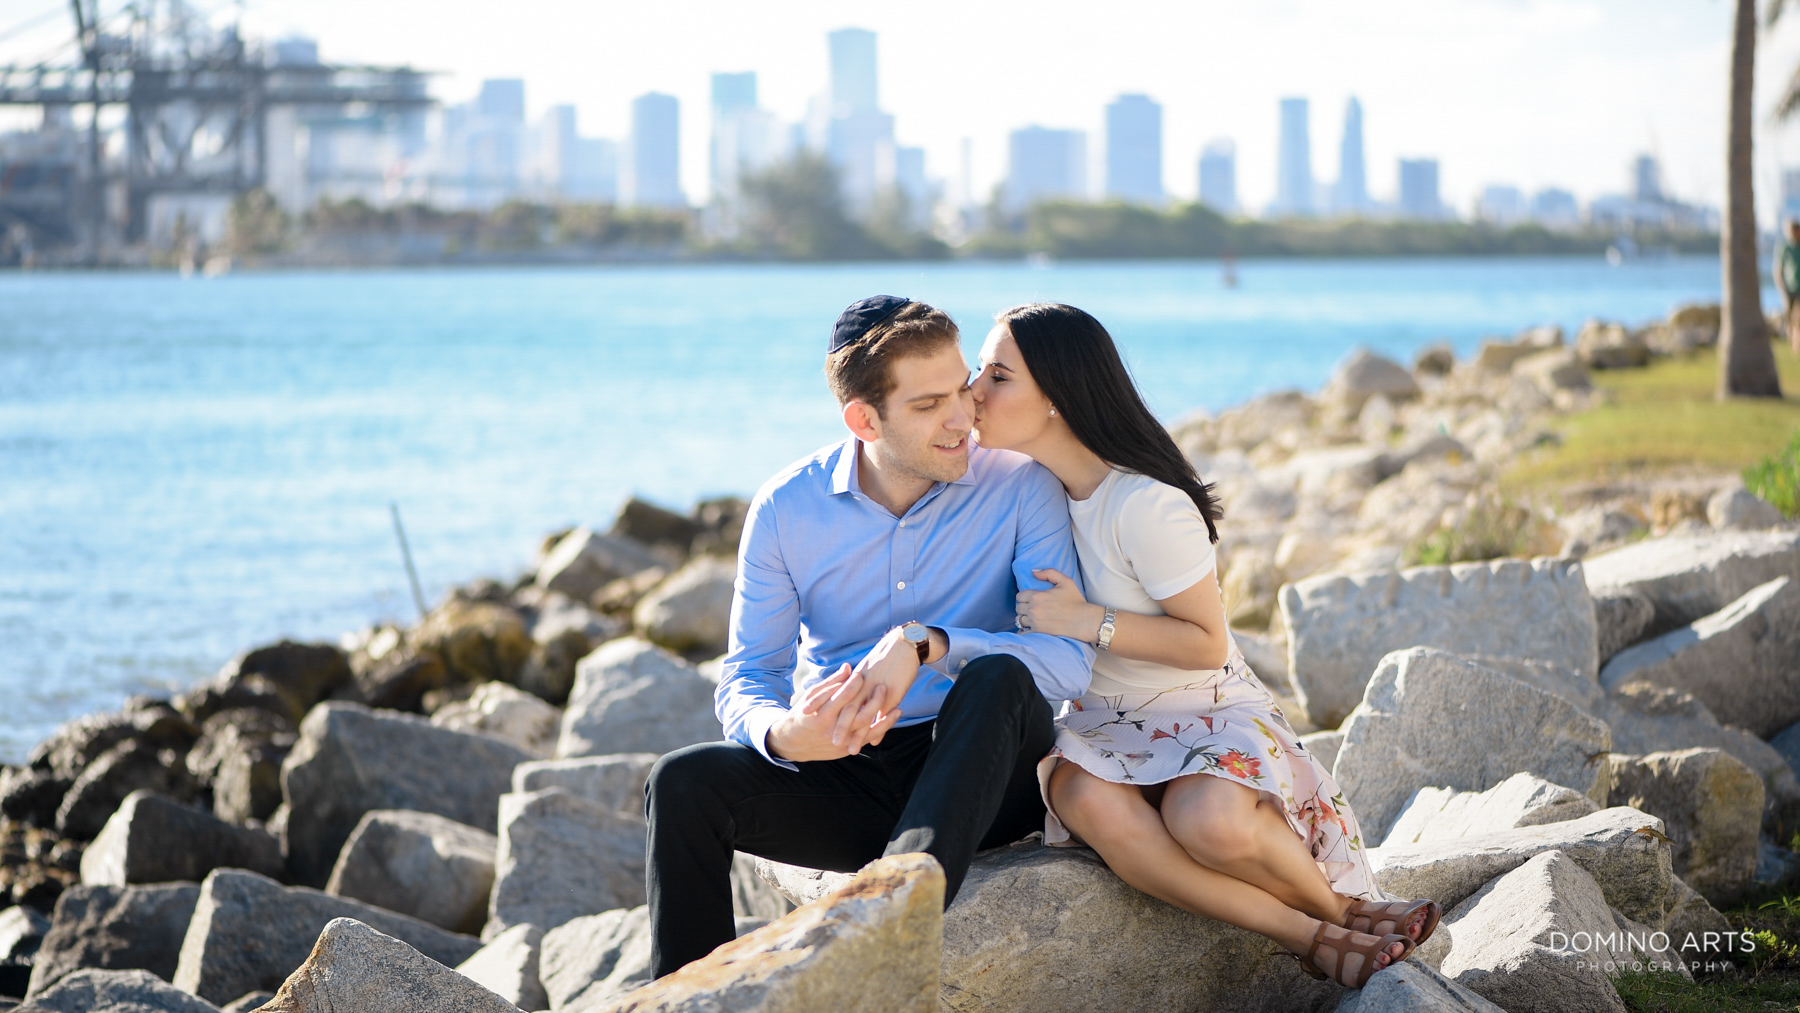 Cute romantic Destination Engagement Photography at South Point Park